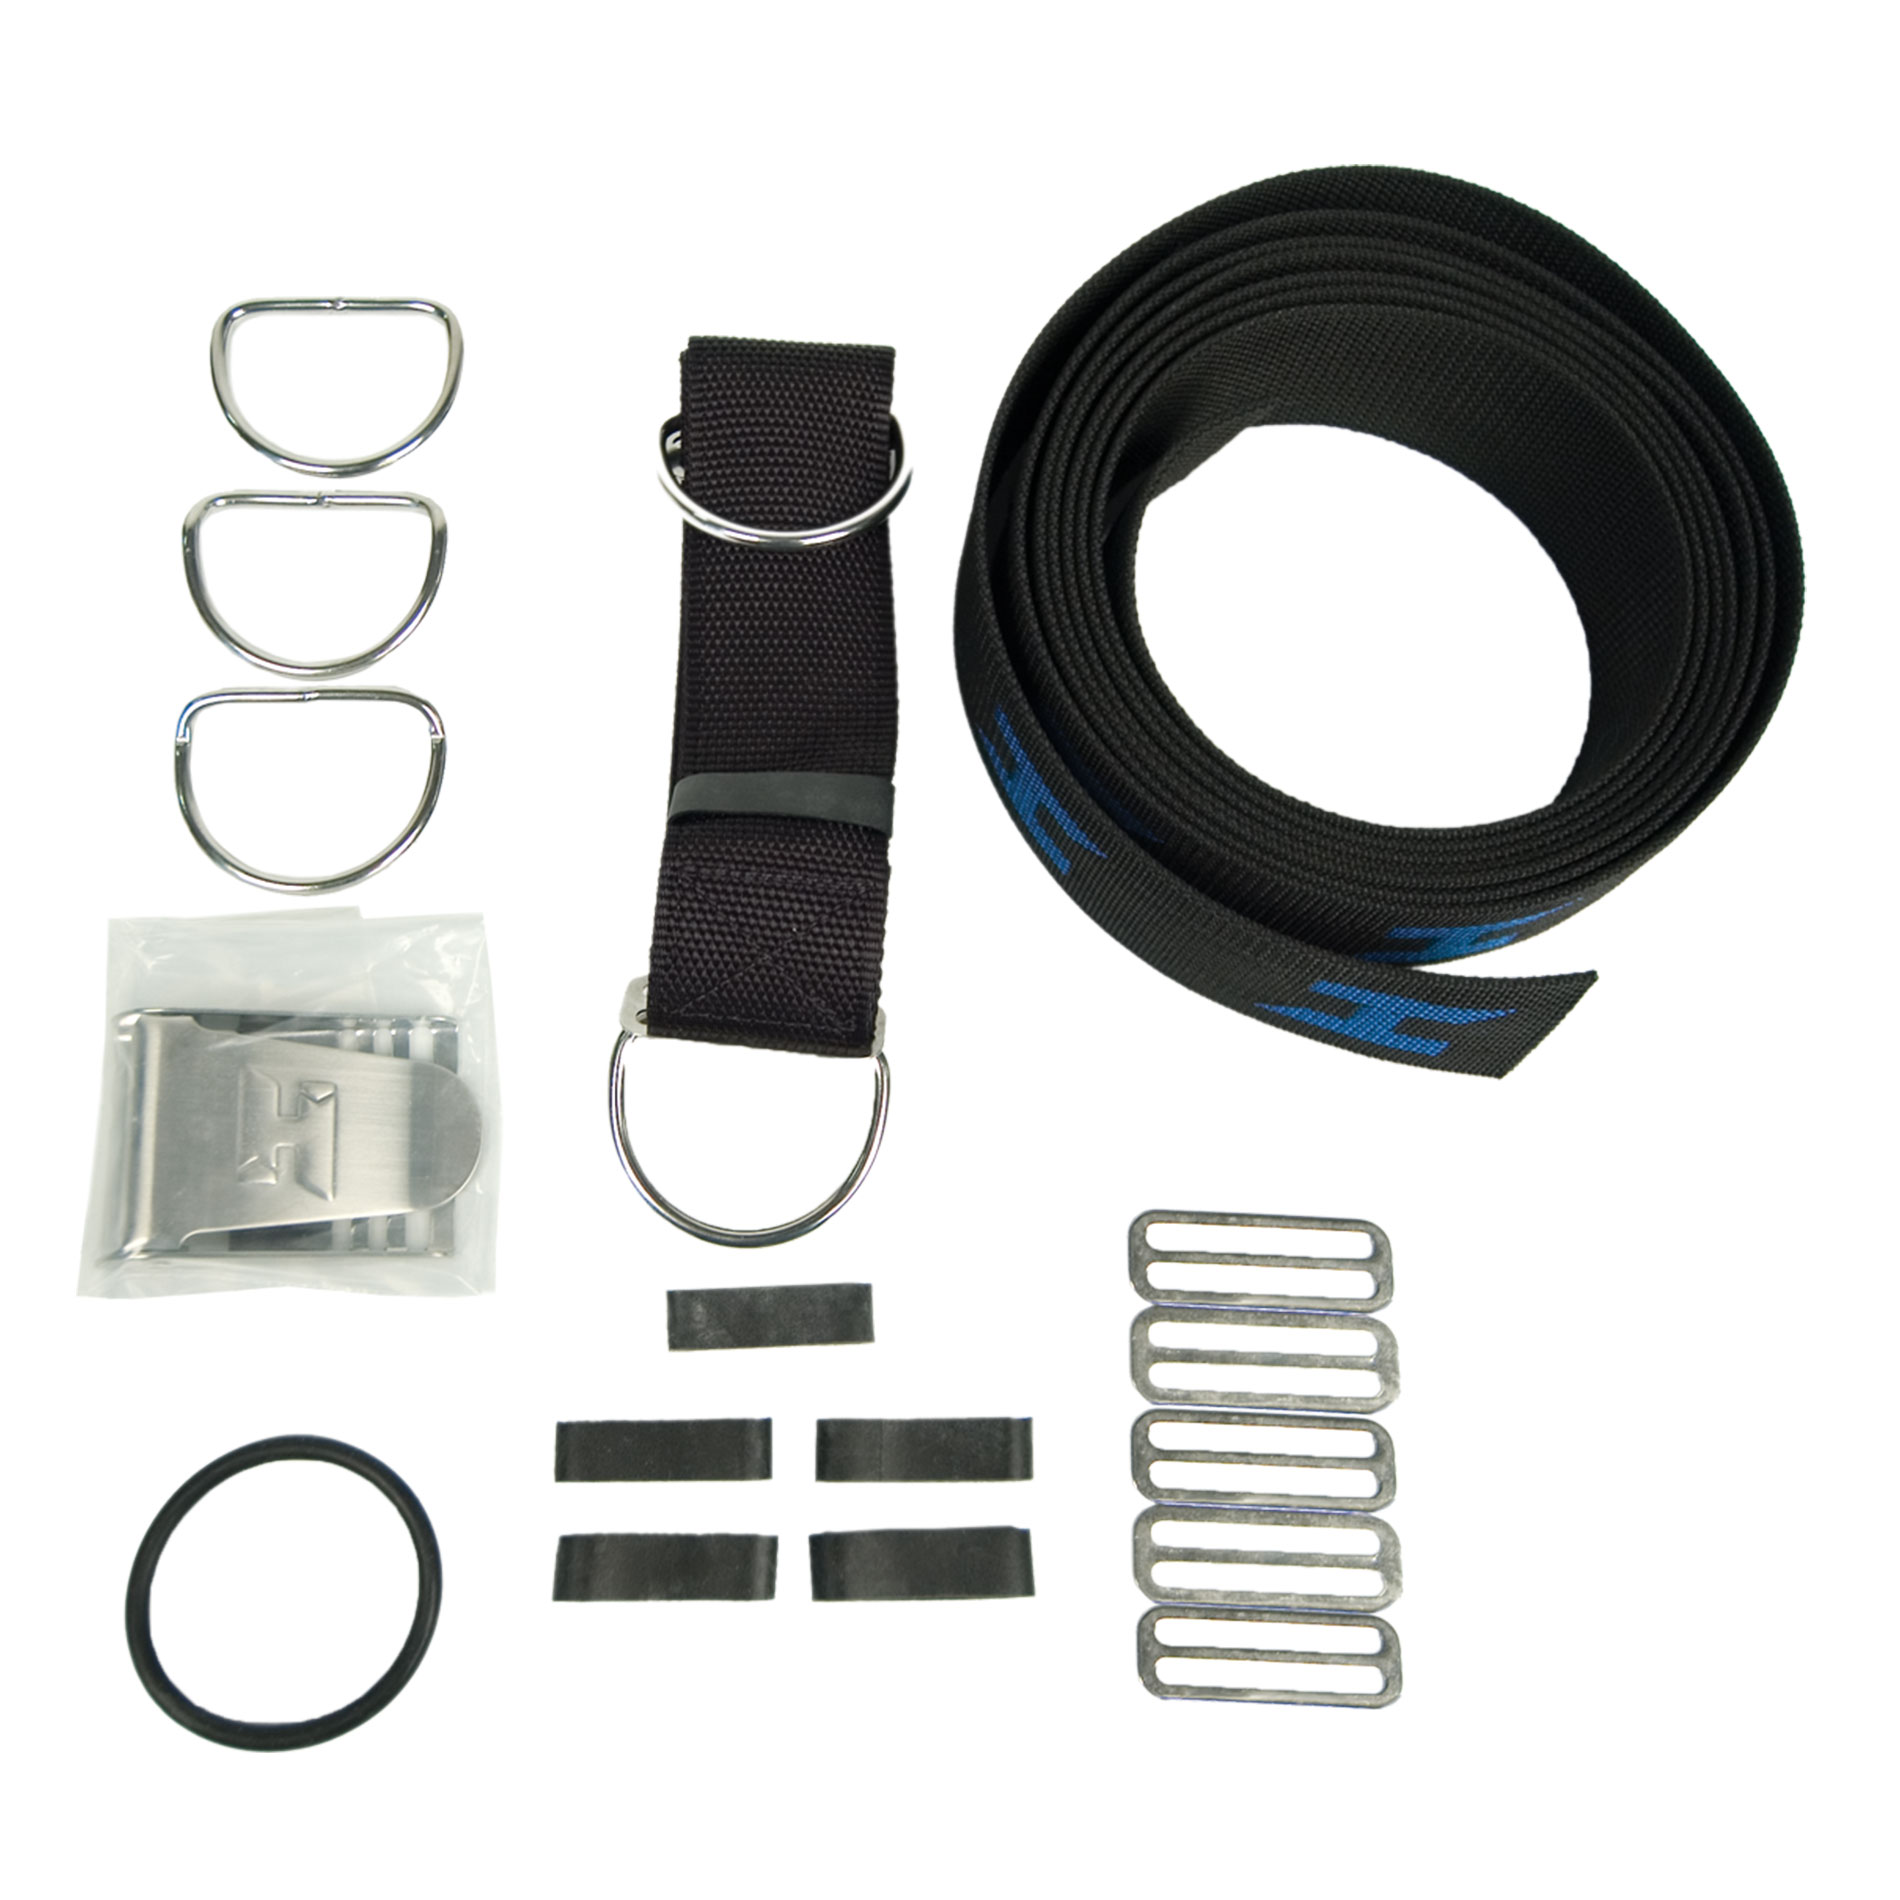 Secure Harness Kit